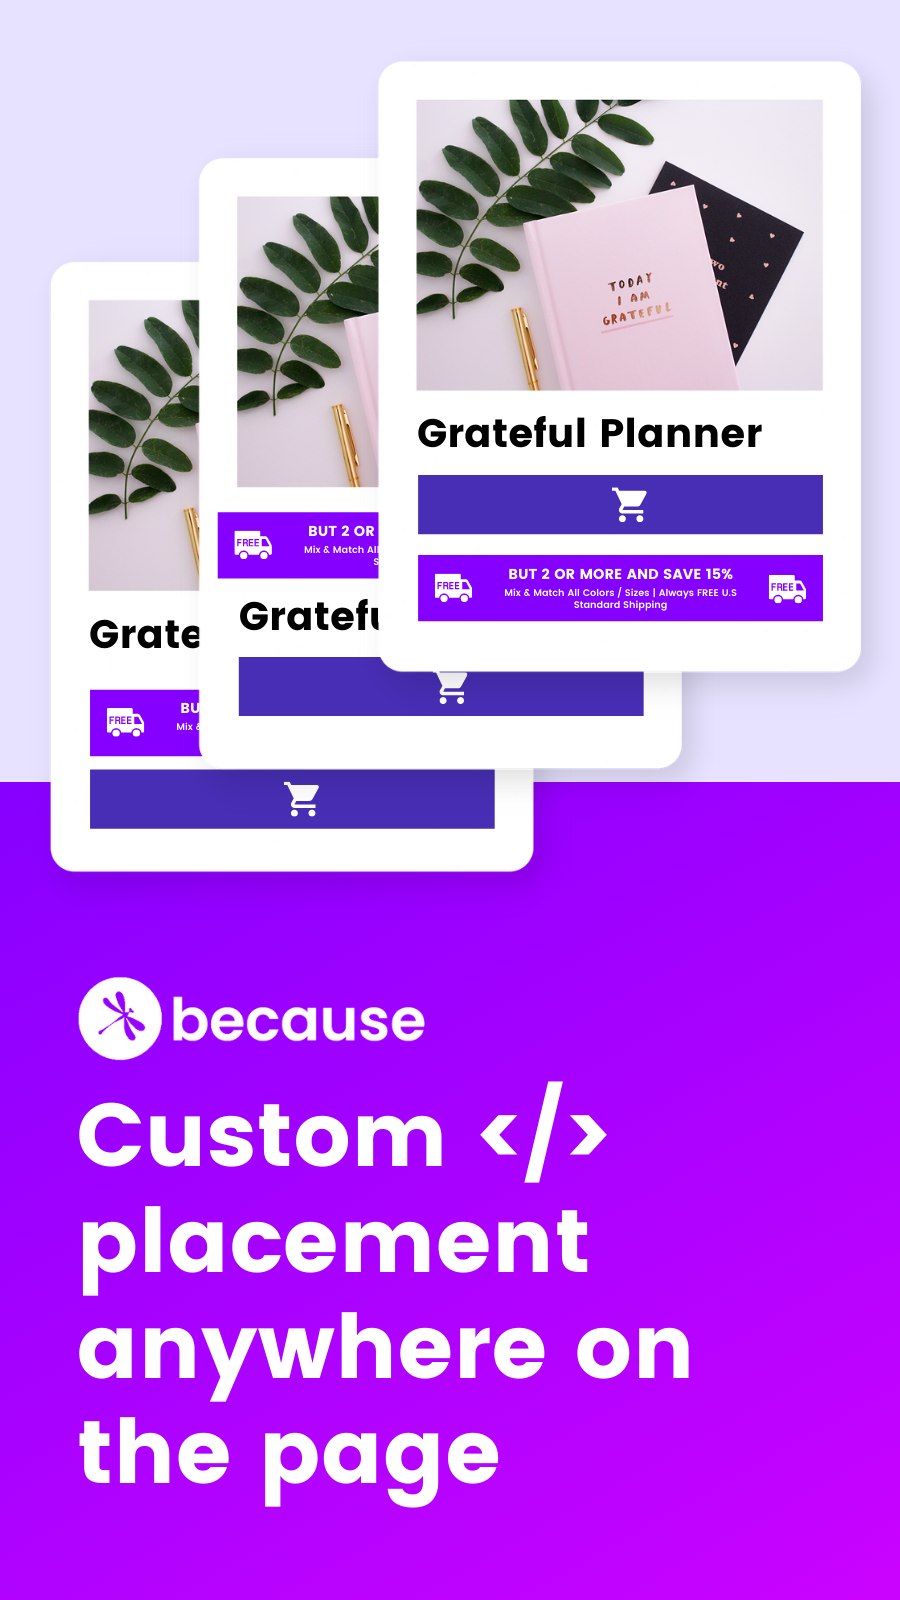 Custom placement anywhere on the page